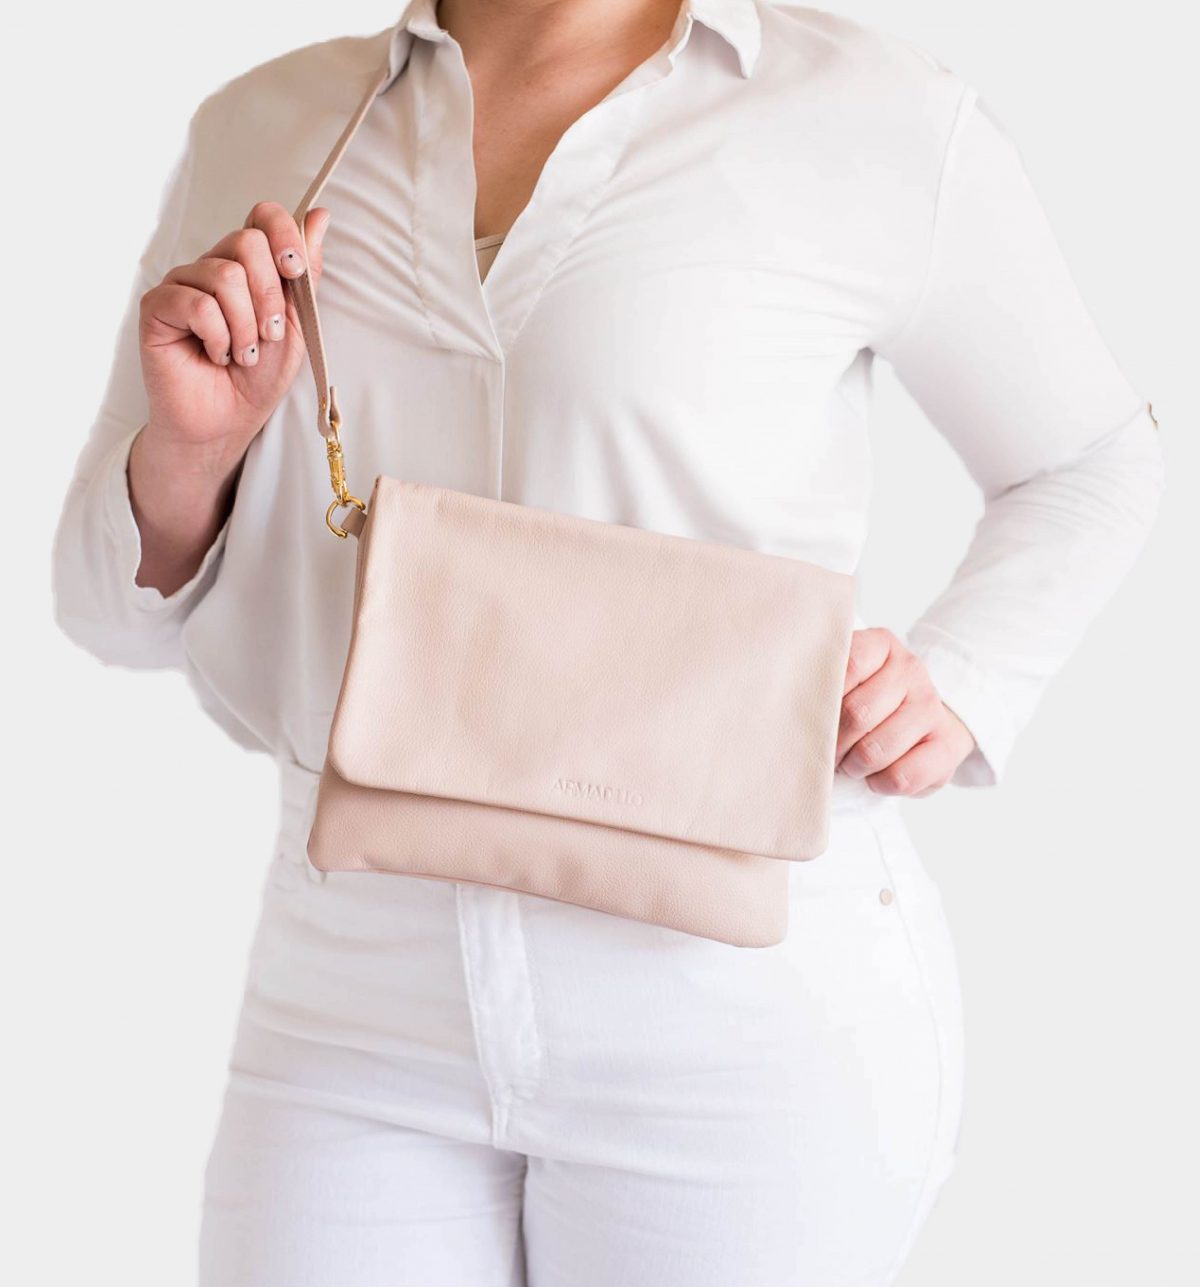 armadillo-leather-handbags-totes-wallets-clutches-backpack-small-leather-goods-accessories-office-travel-gifts-in-canada-slide-crossbody-clutch-bags-nude